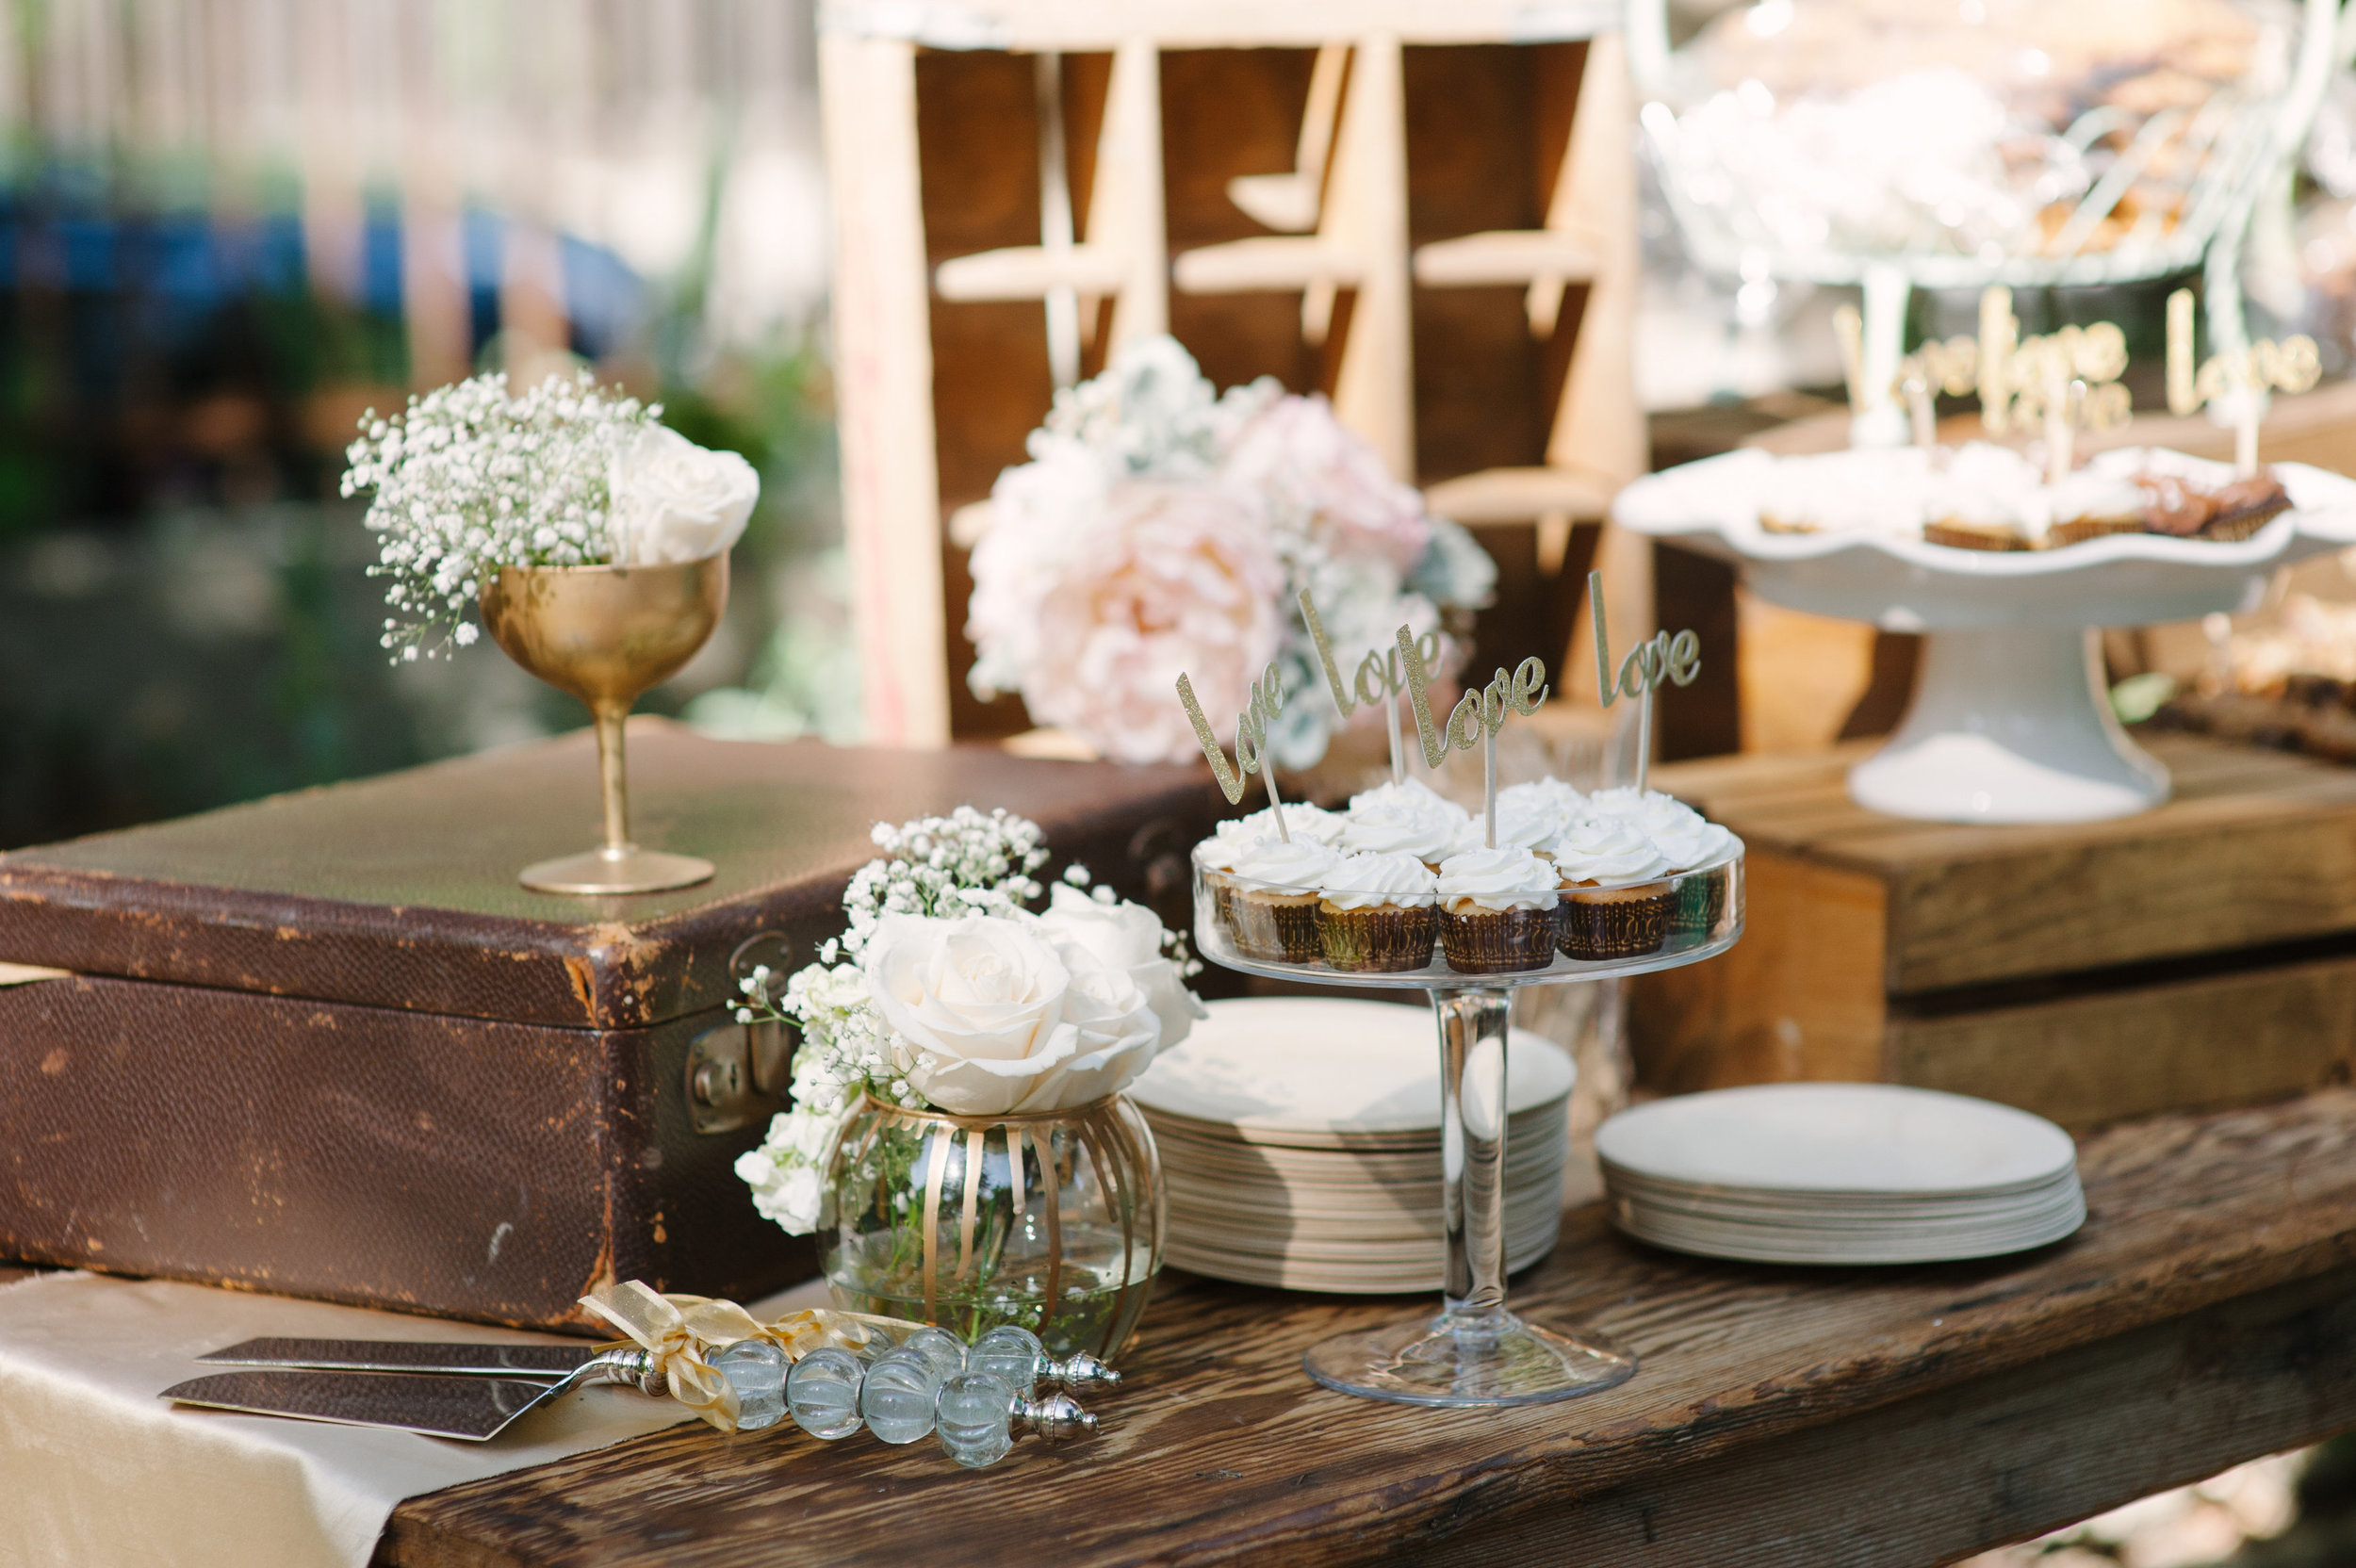 Dessert table styled for wedding reception.